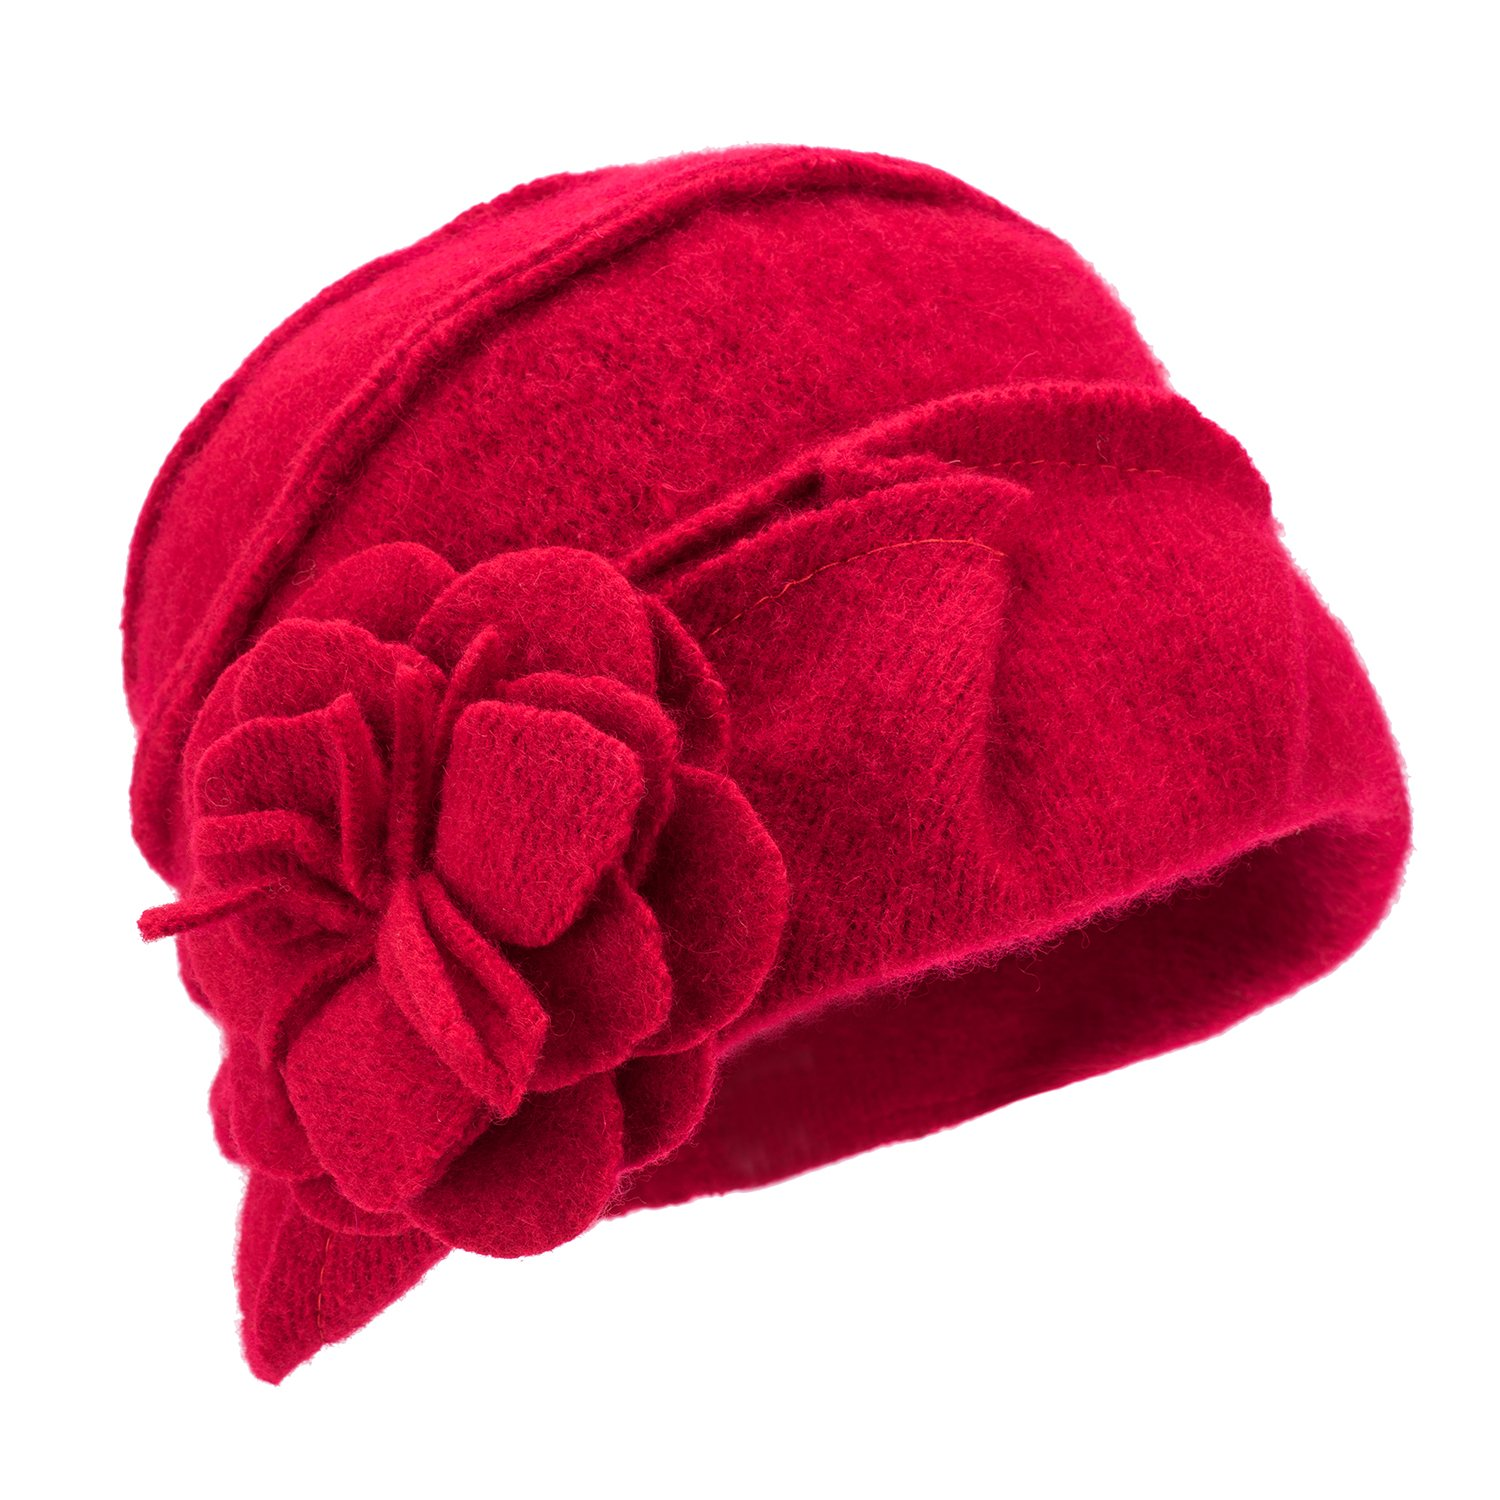 Lawliet Solid Color 1920s Womens 100% Wool Flower Winter Bucket Cap Beret Hat A376 (Red)